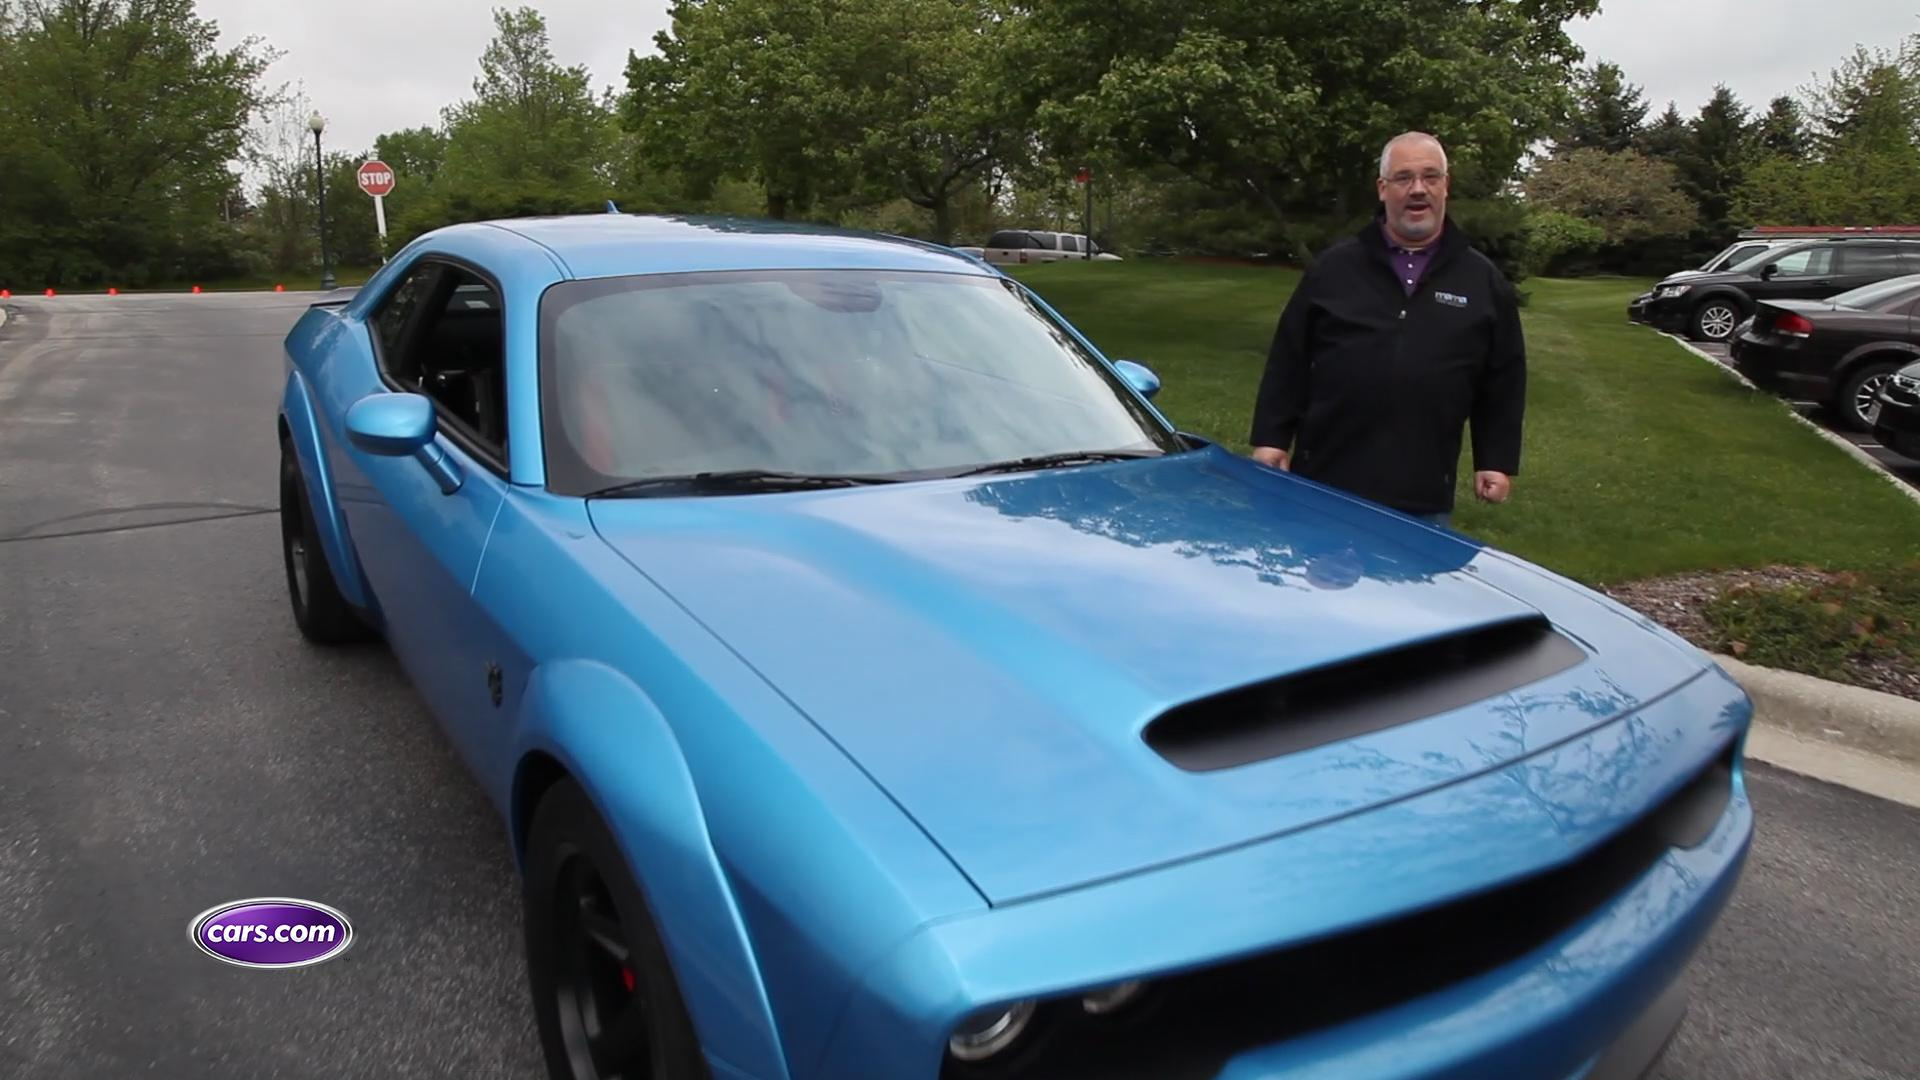 Video: We Fire Up the 2018 Dodge Challenger SRT Demon